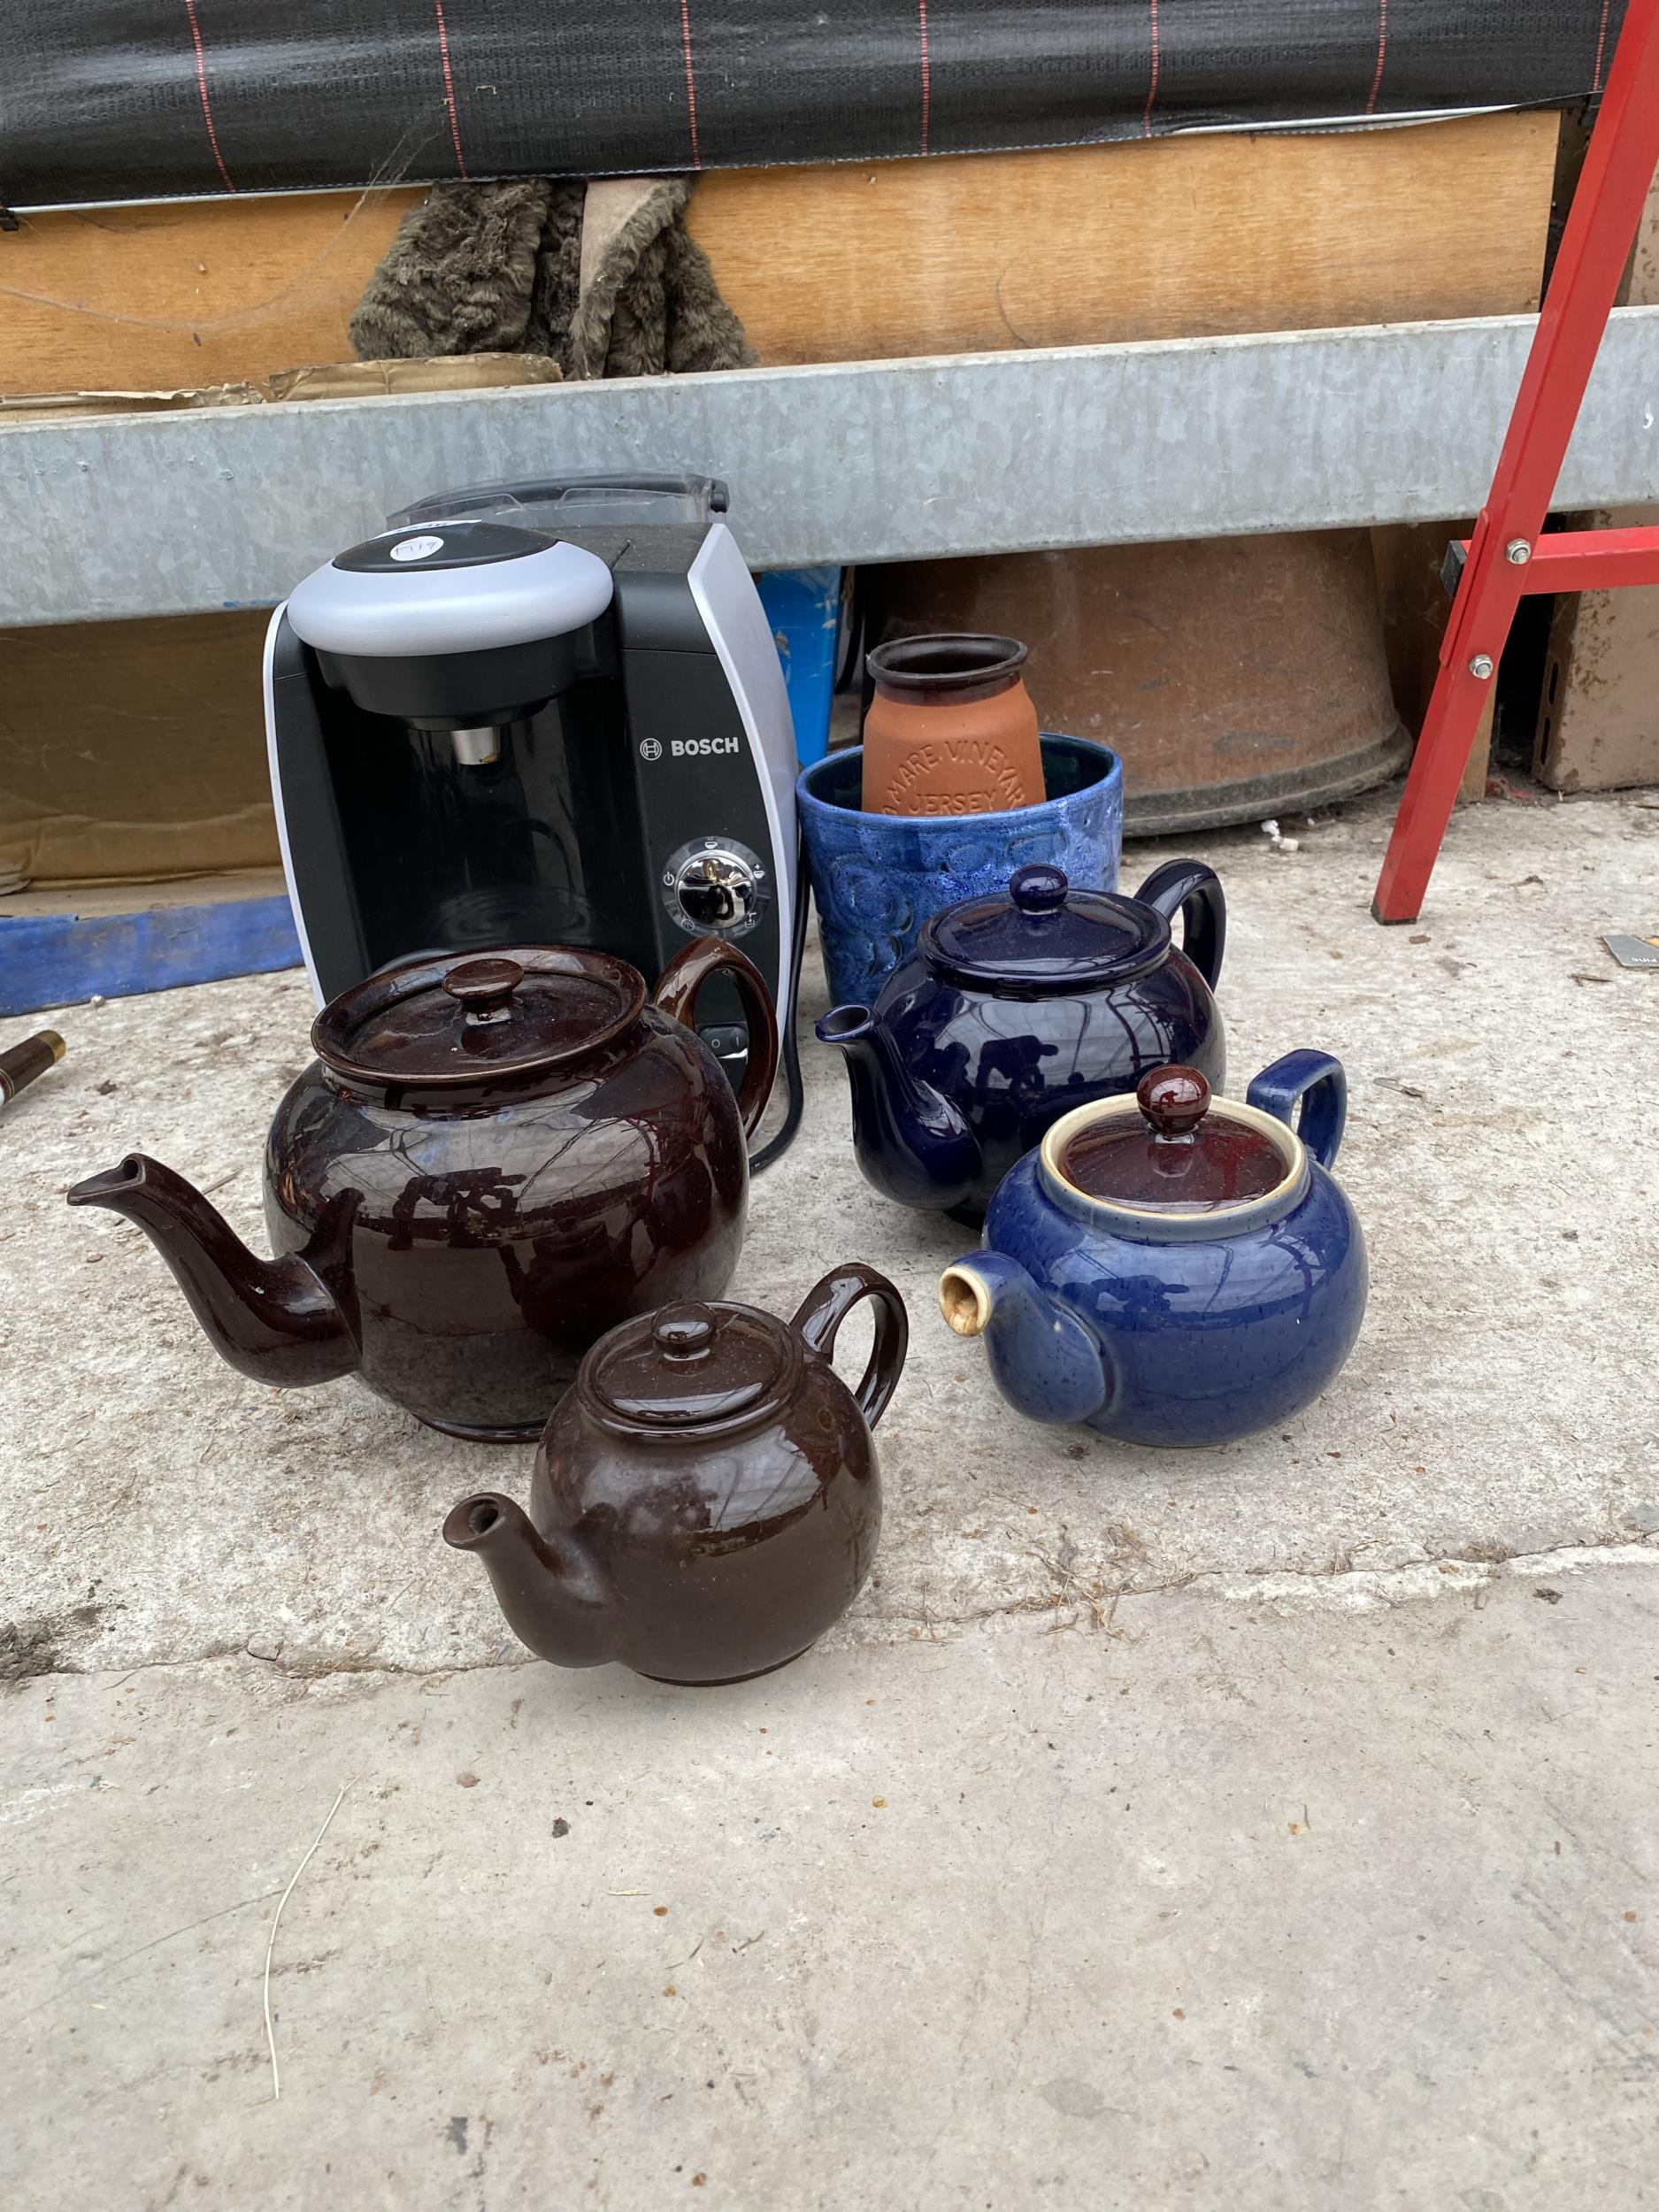 A COFFEE MAKER AND VARIOUS TEAPOTS - Image 2 of 3